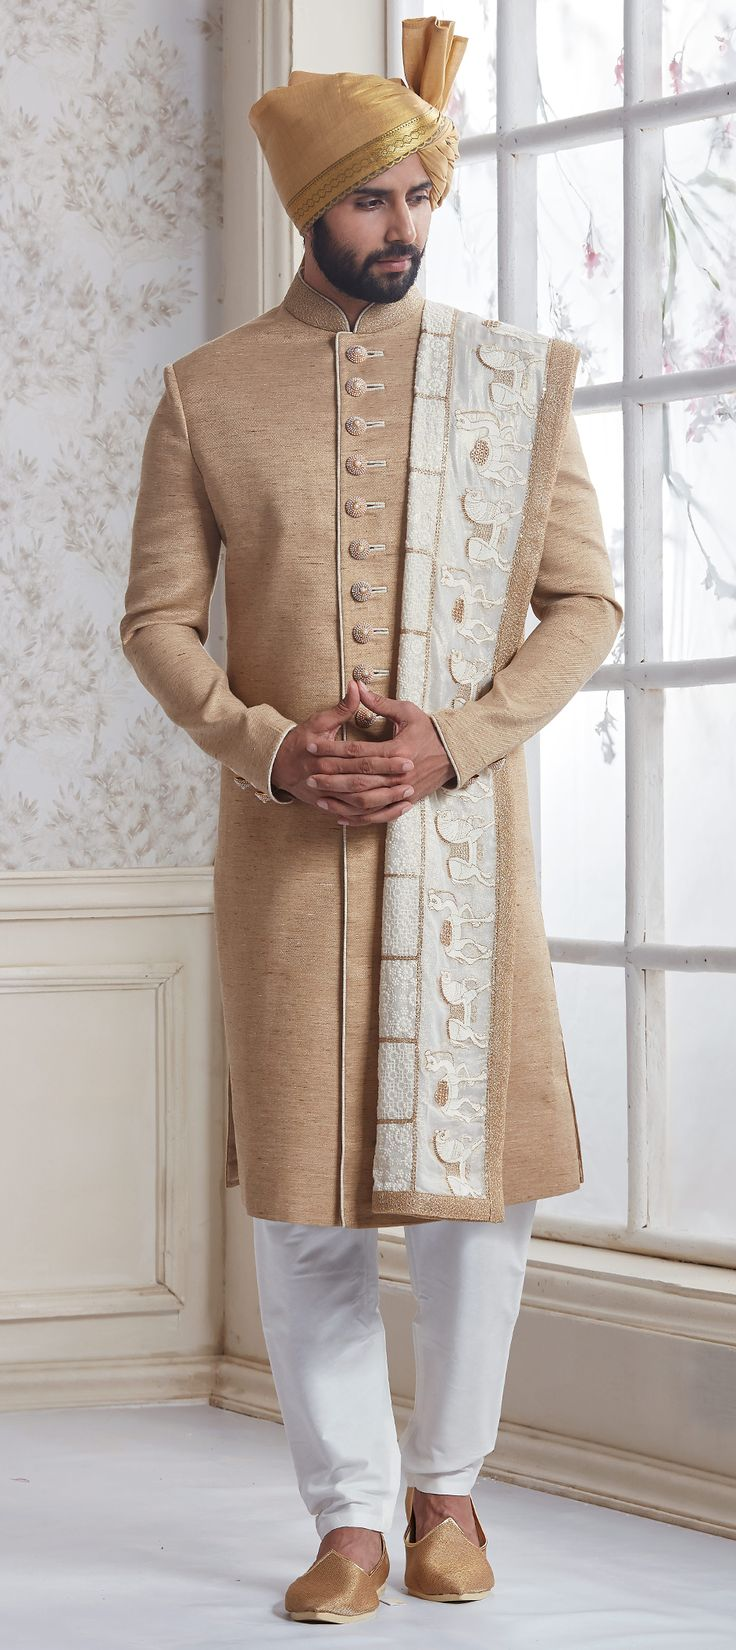 506233: Beige and Brown color family stitched Sherwani .